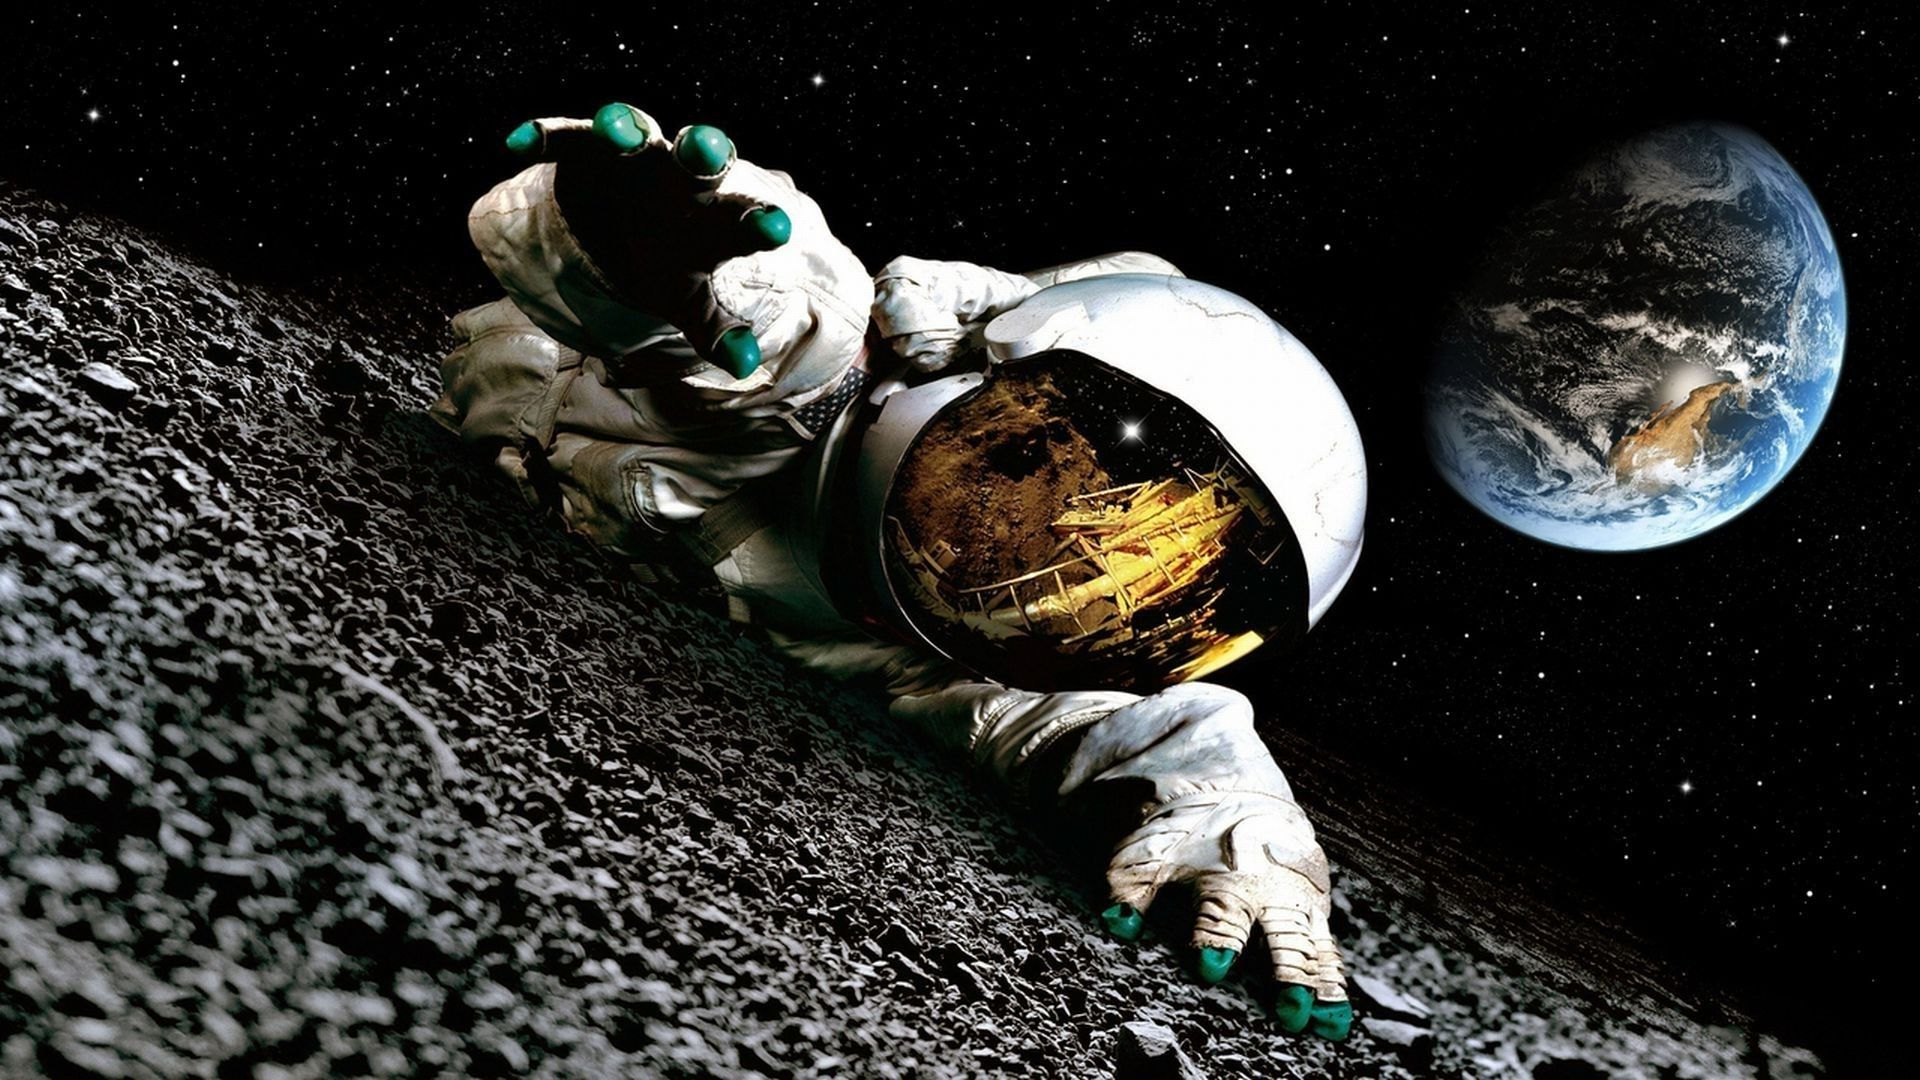 Astronaut Drinking Beer On The Moon Hd Page 4 Pics About Space